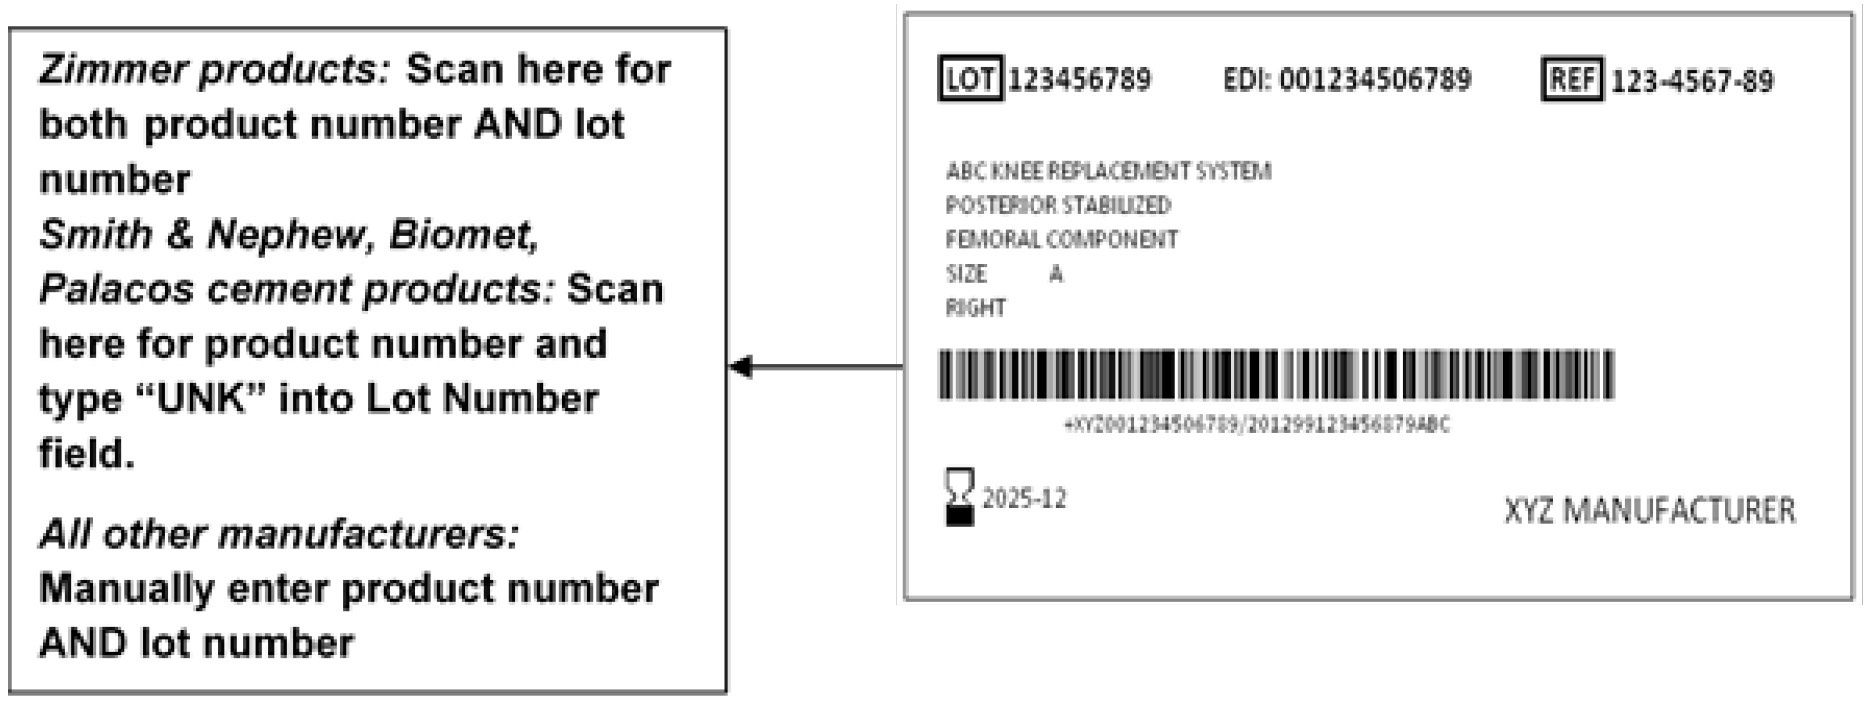 A sample sticker with one barcode. The information can be found in the text above.